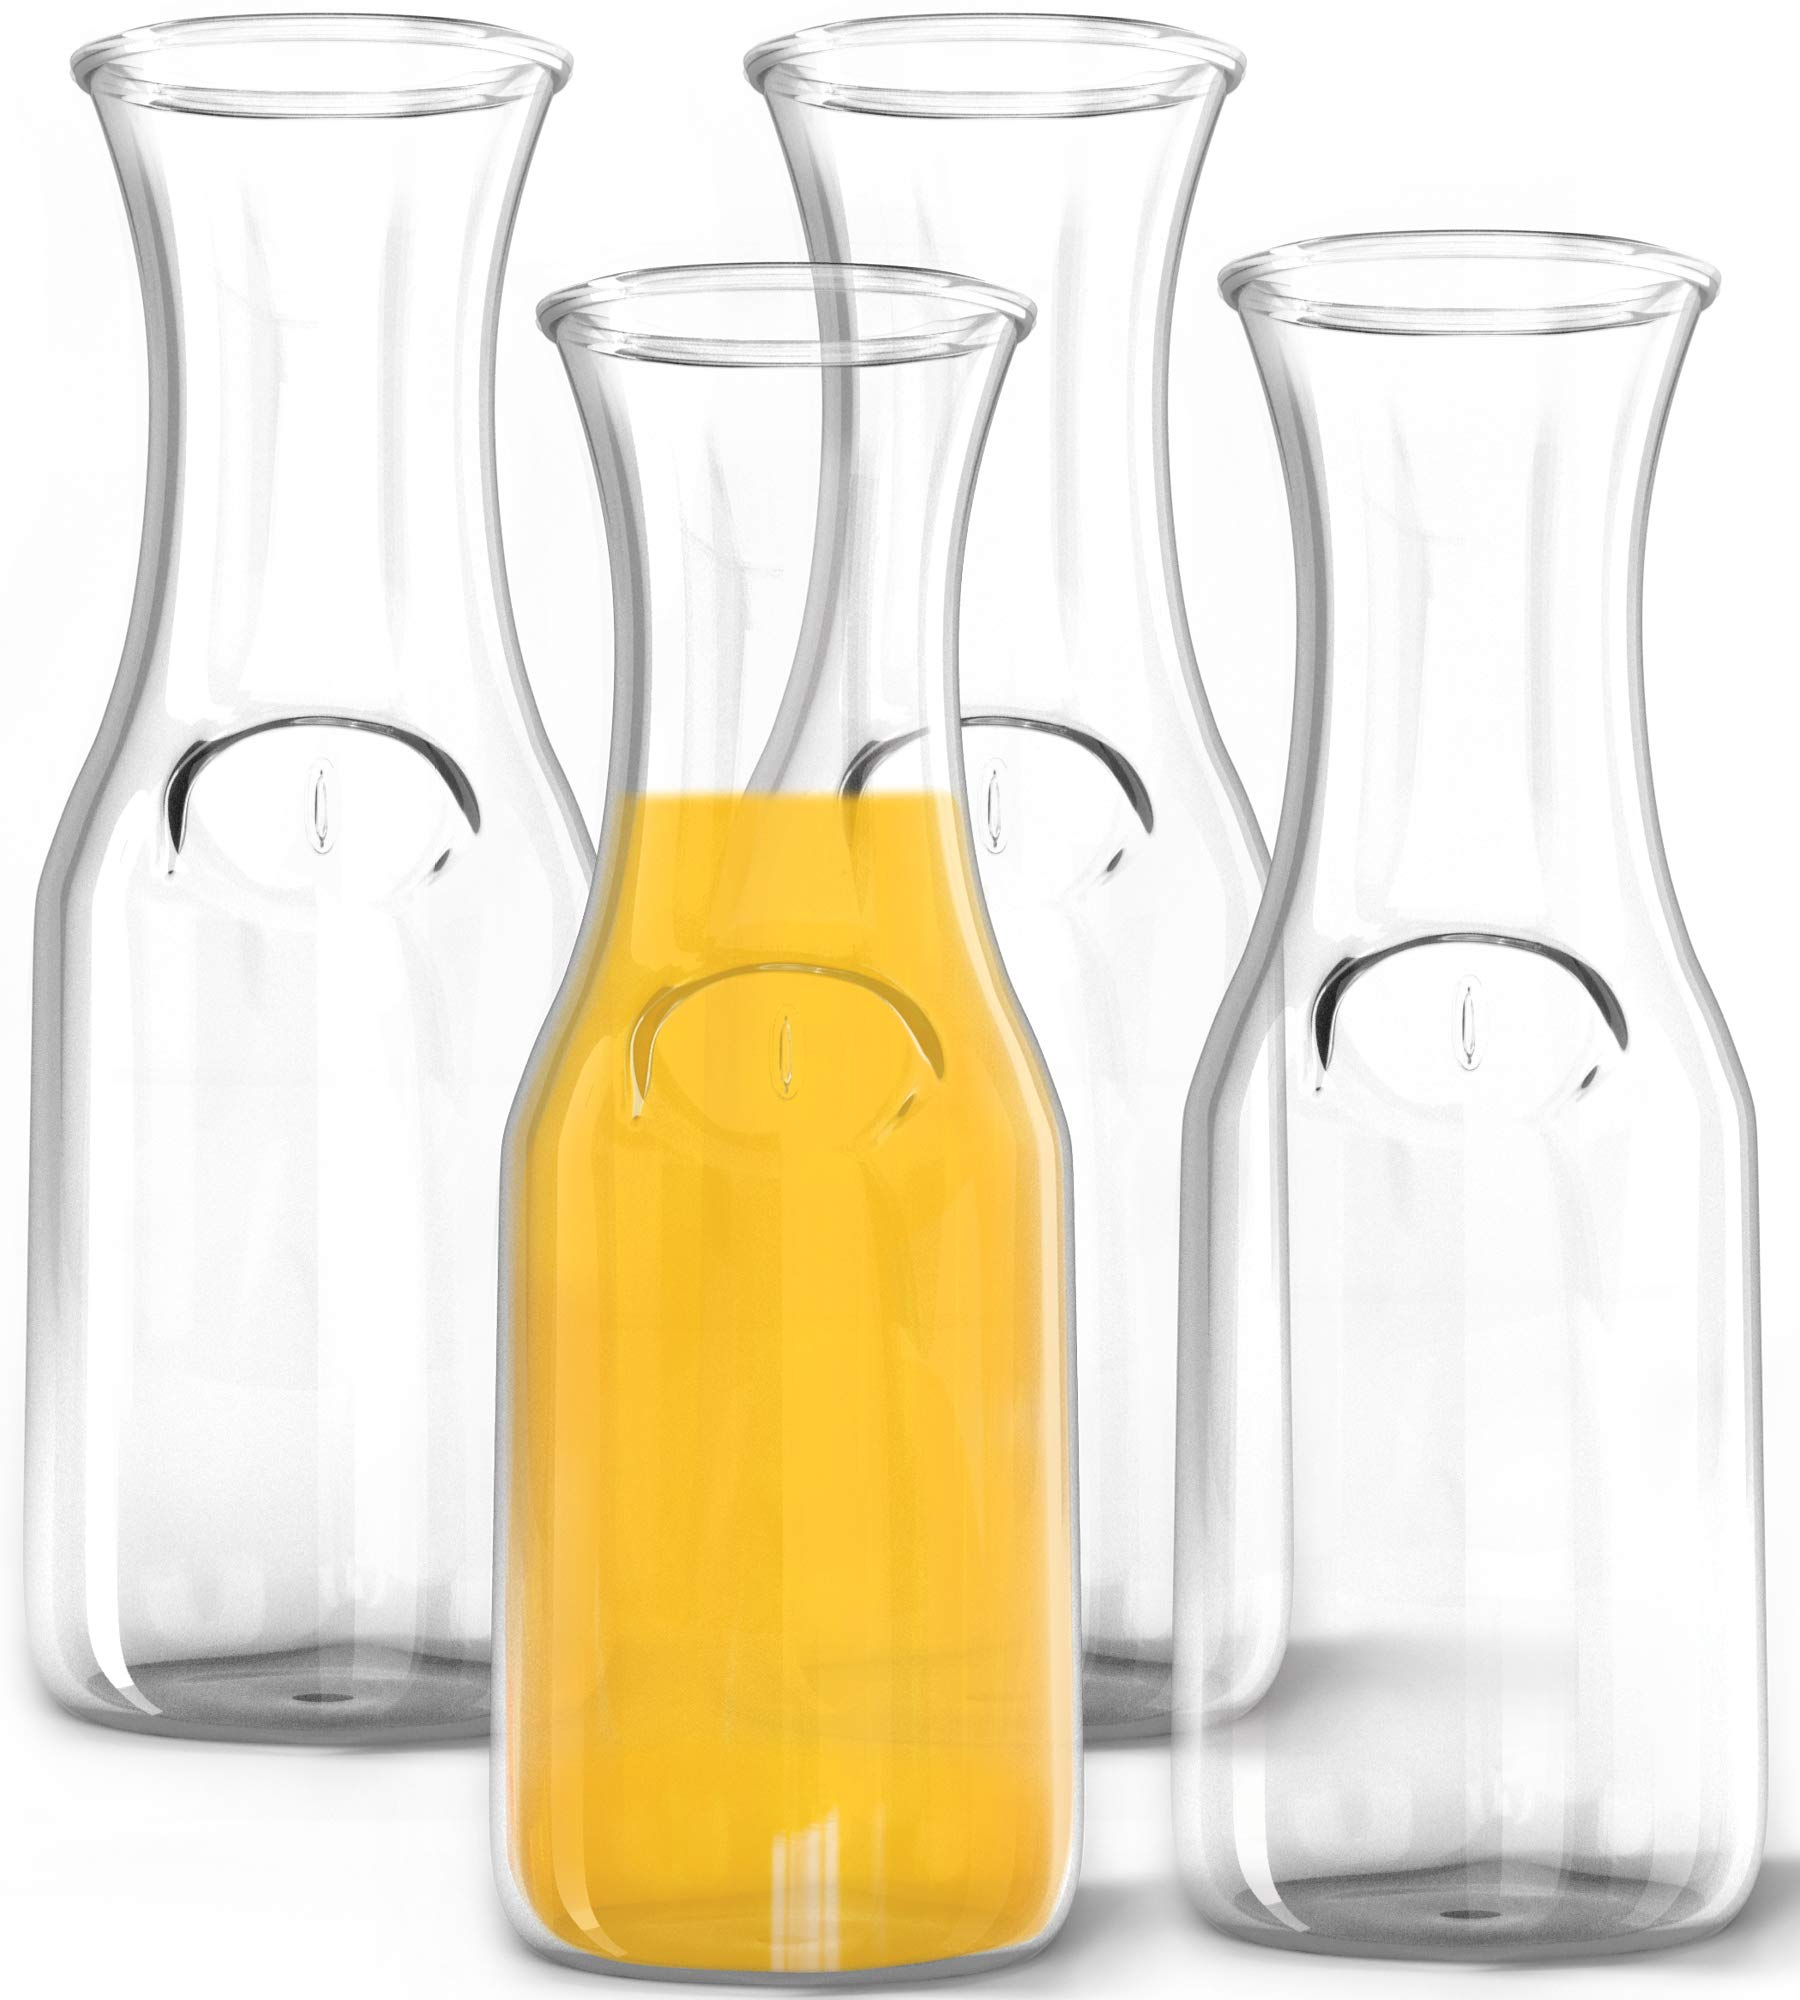 1 Liter Glass Carafe, 4 Pack - Elegant Wine Decanter and Drink Pitcher - Narrow Neck For Comfortable Grip, Wide Mouth For Easy Pouring - Great for Parties and Events - Kitchen Lux